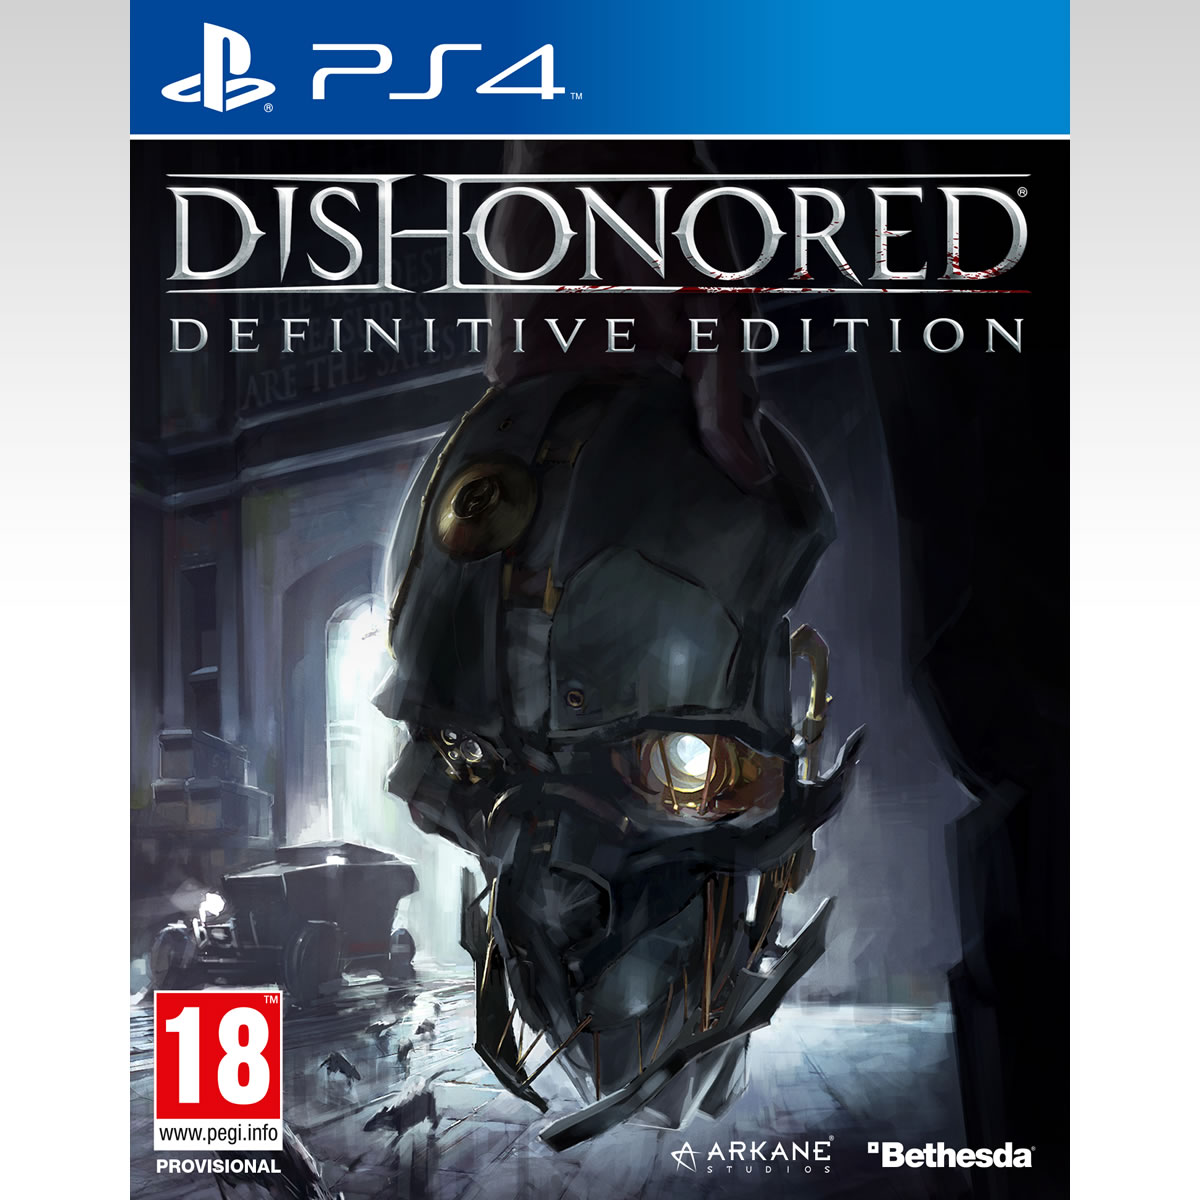 DISHONORED - DEFINITIVE EDITION (PS4)